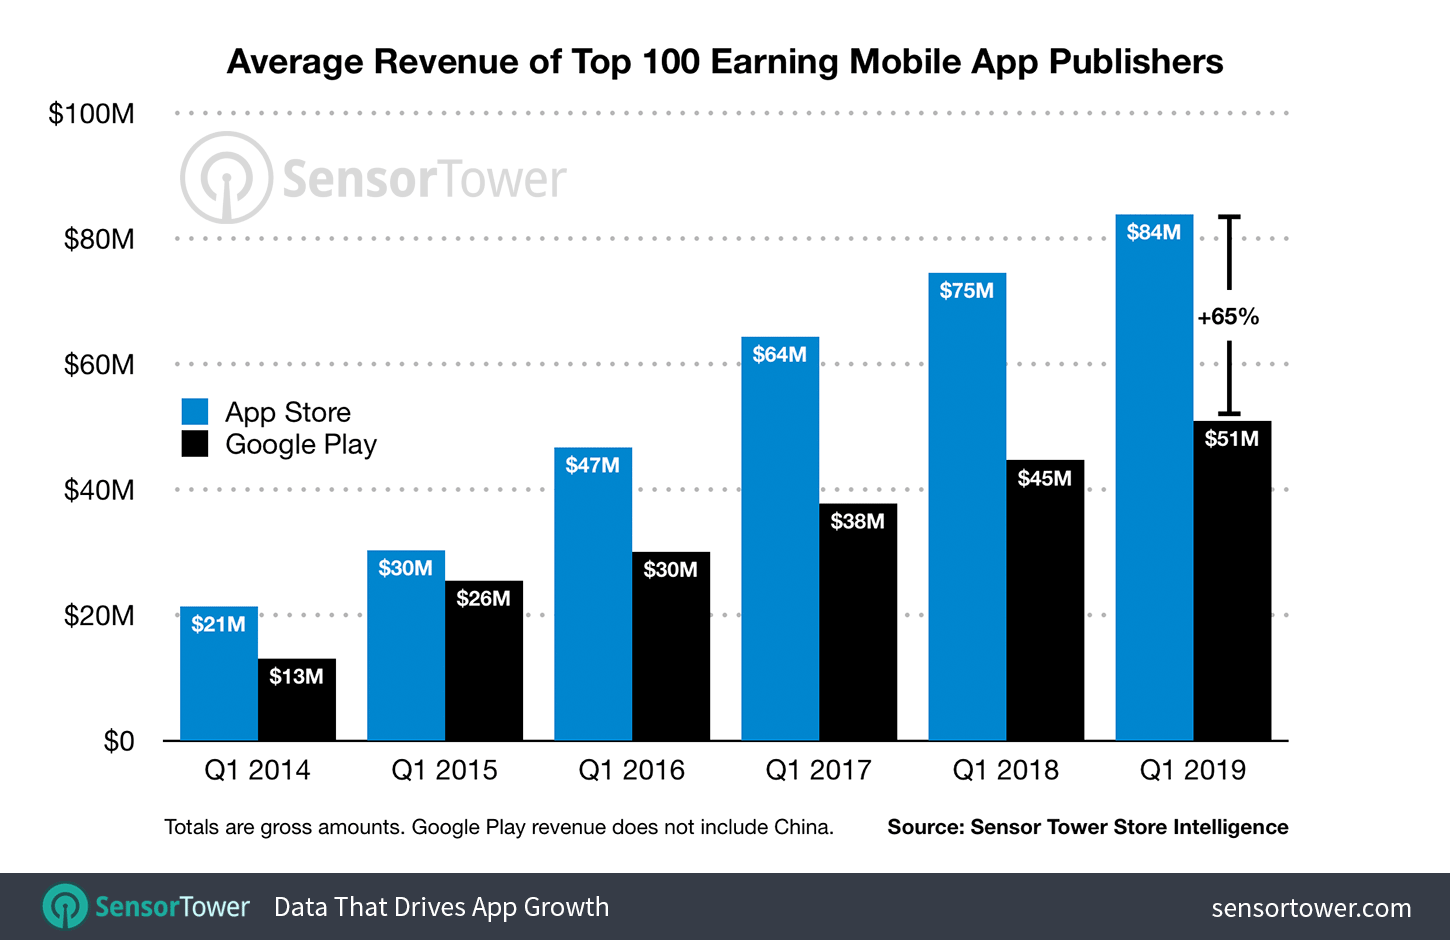 Apple's App Store publishers earn more than Google Play store